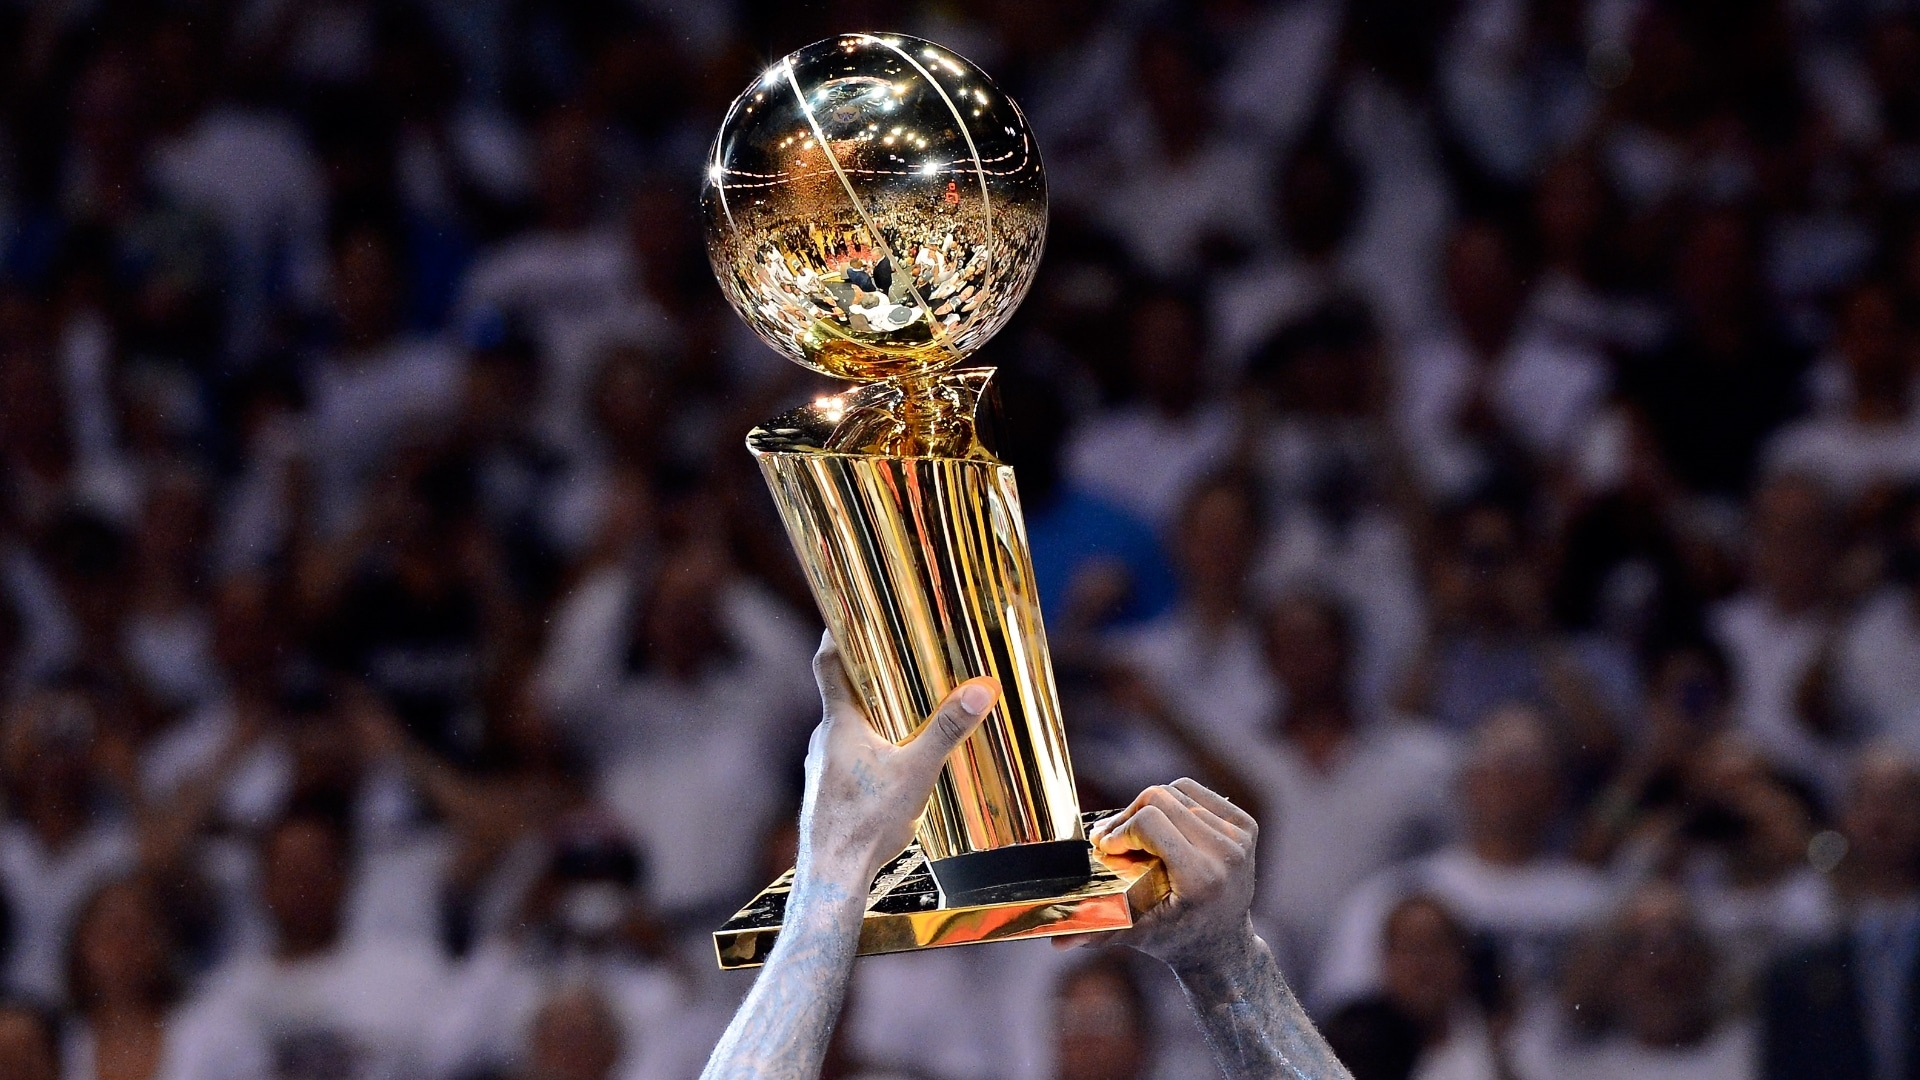 Odds on Who Will Win the NBA Championship Once the 2020 Season Restarts